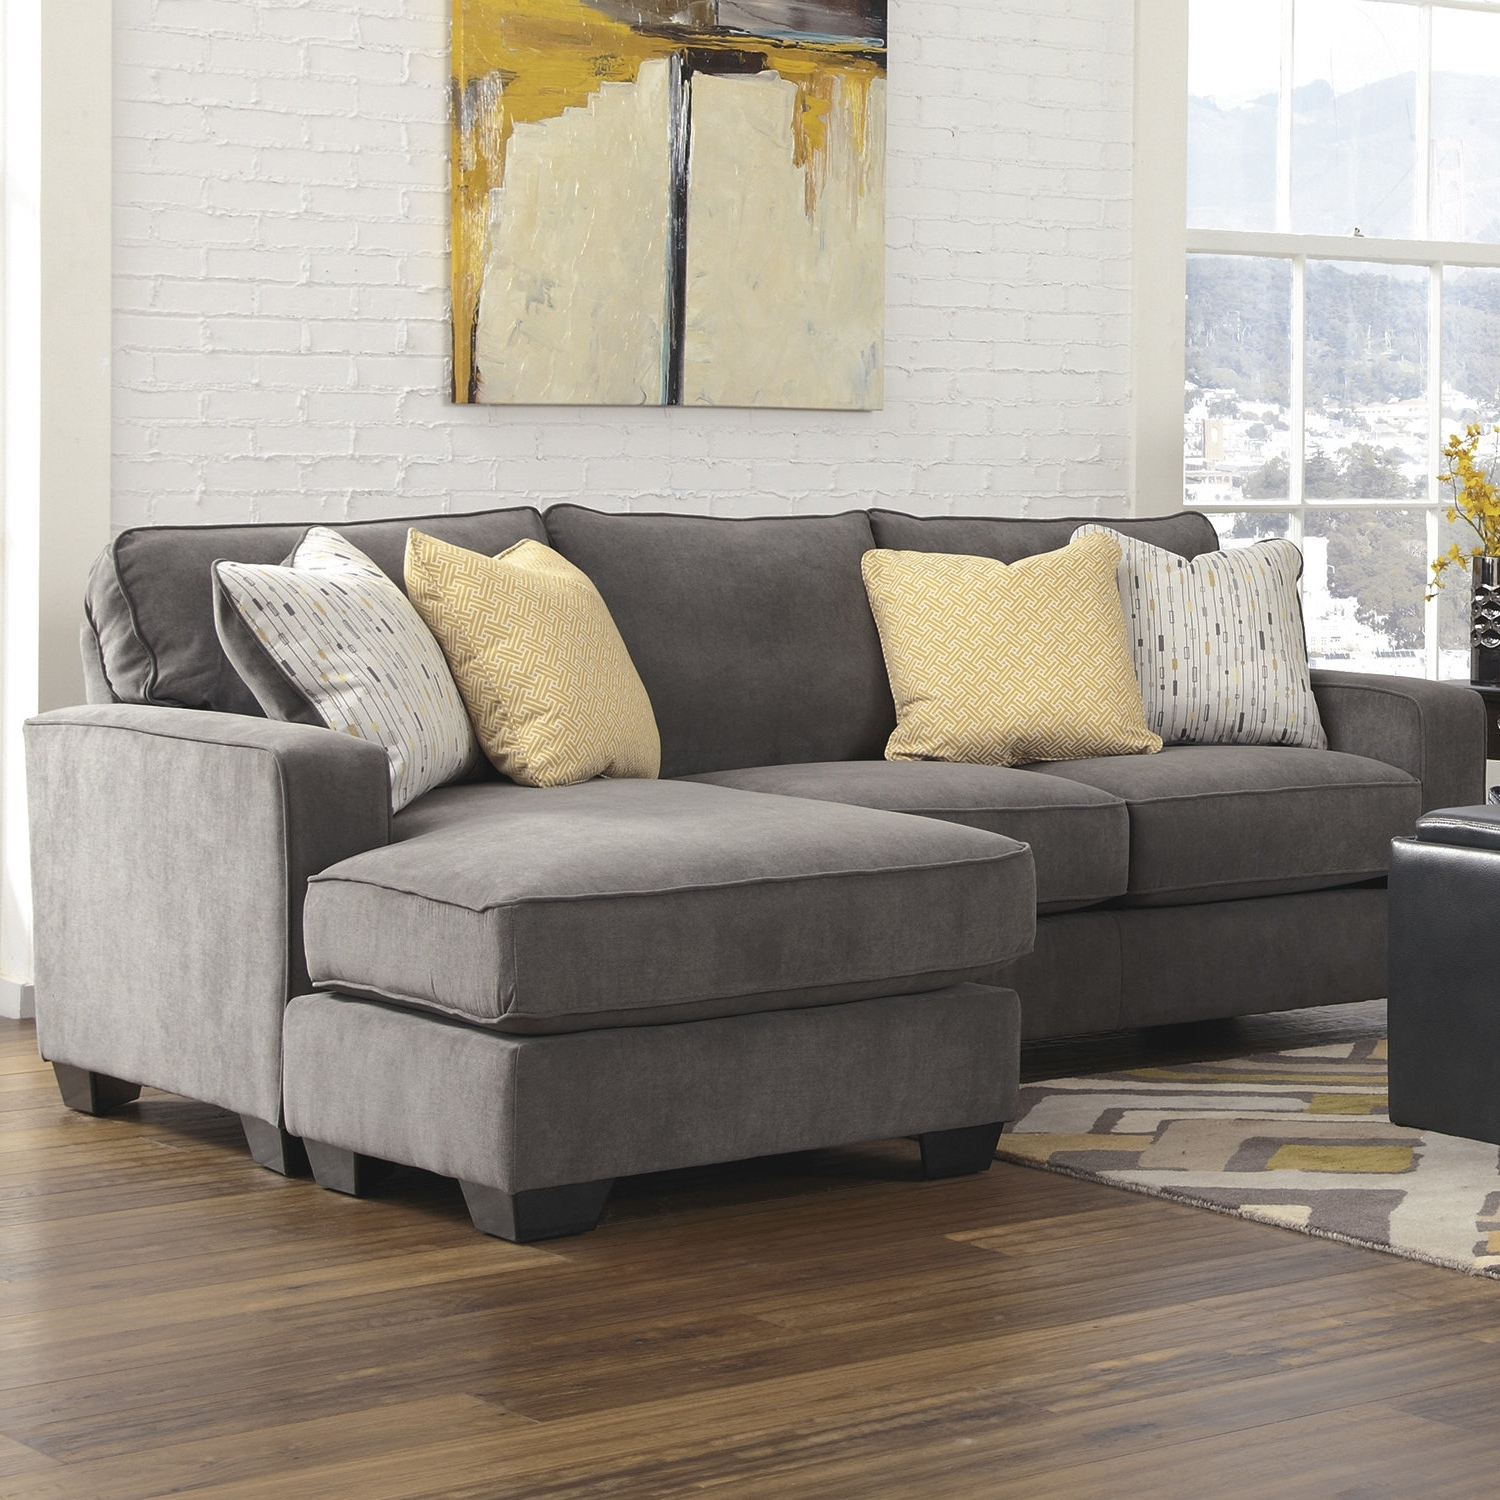 Sectional Sofas For Latest On Sale Sectional Sofas (View 18 of 20)